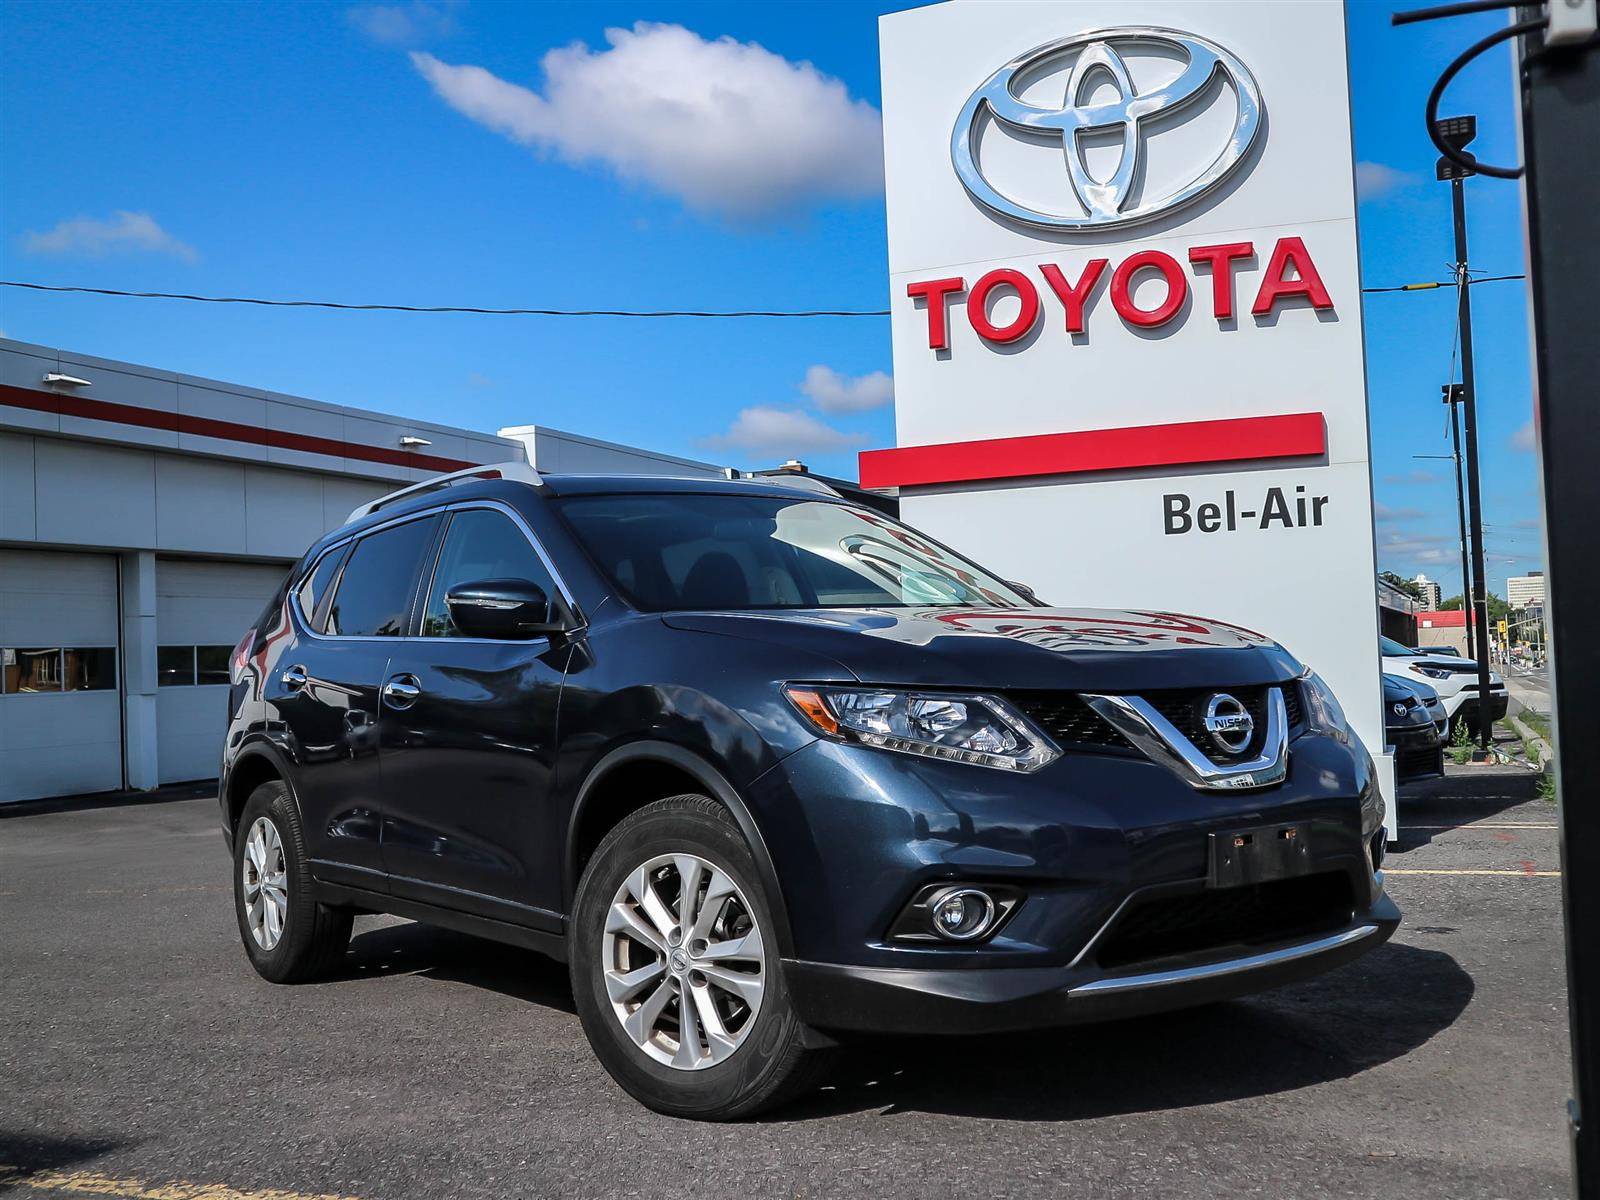 2015 Nissan Rogue at Bel-Air Toyota